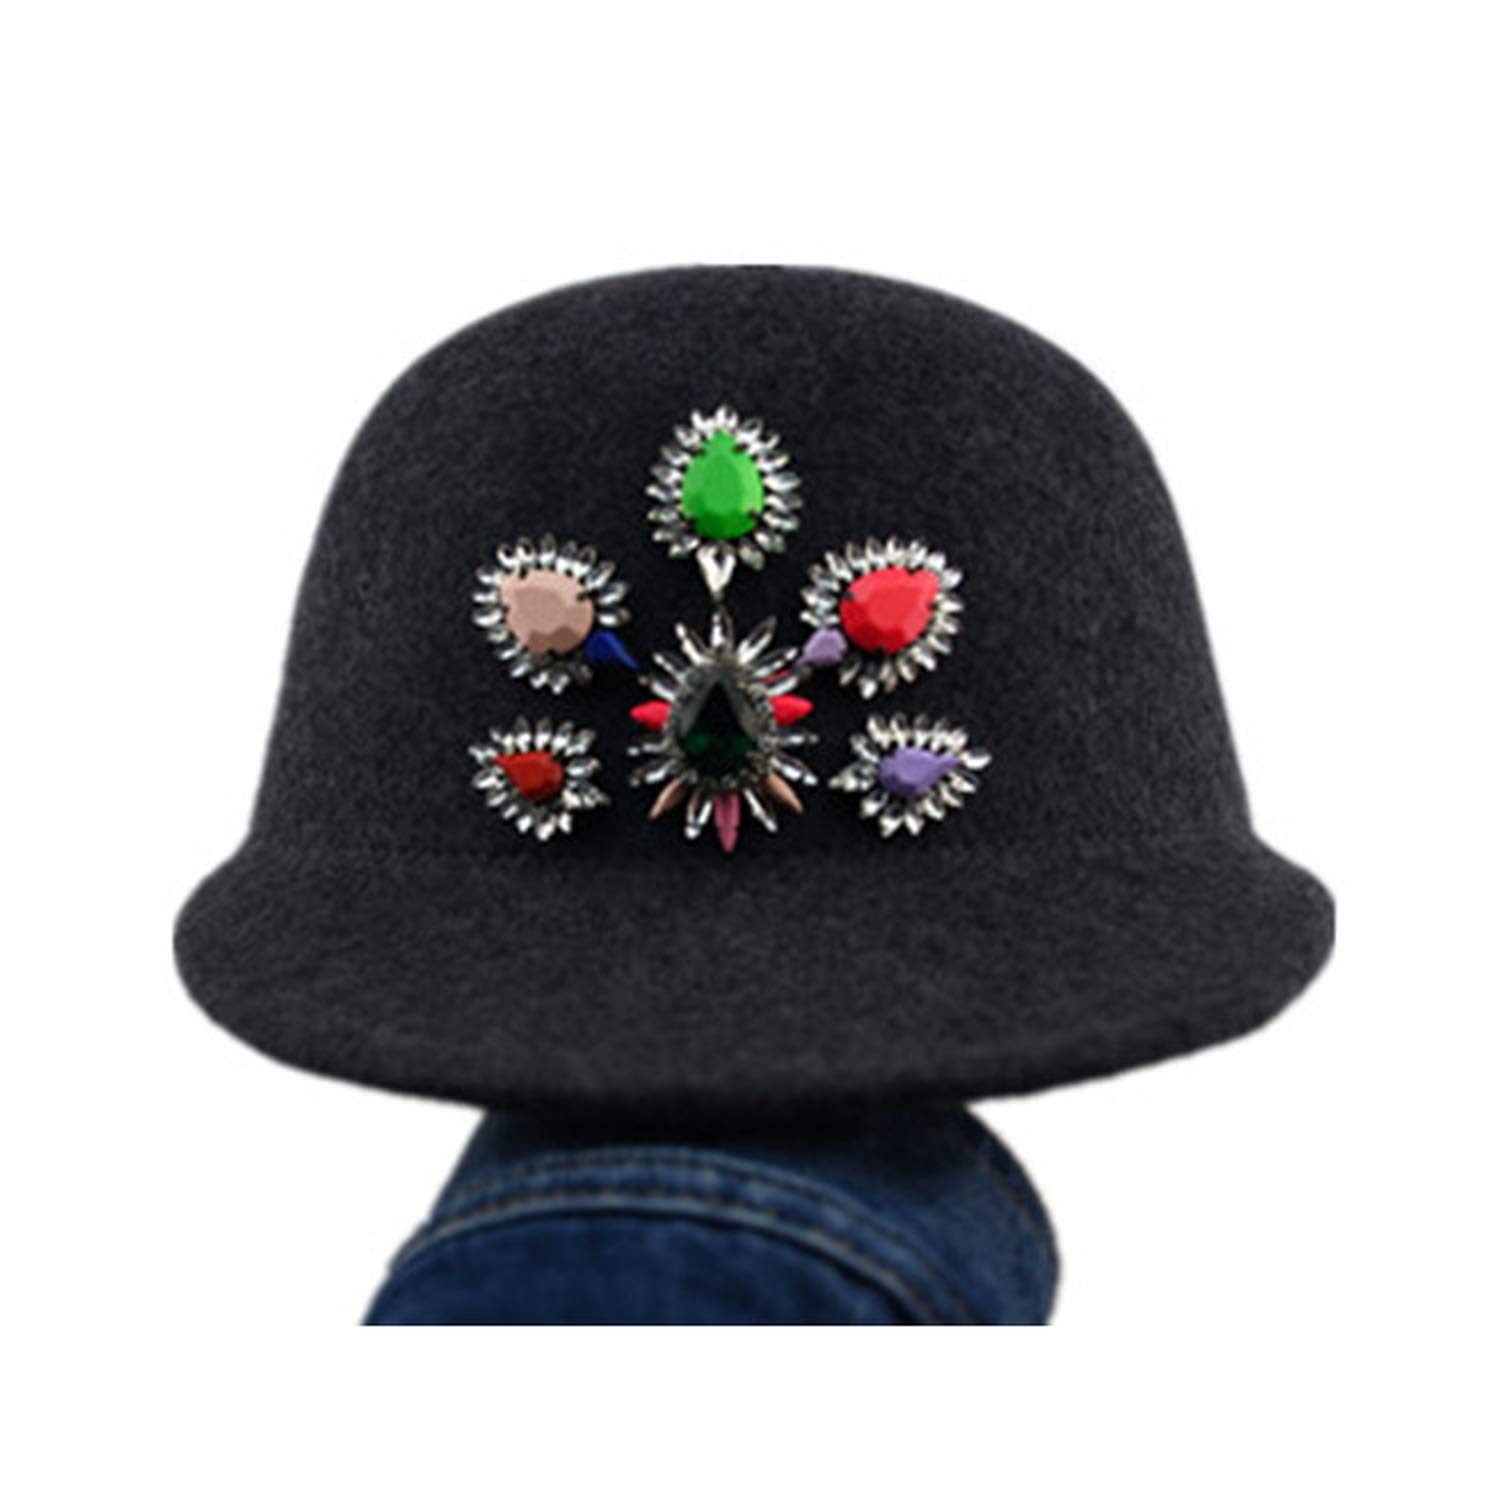 1 Xivikow 2019 Fashion Korean Fashion Wool Feather Lady hat Women Fashion hat 650